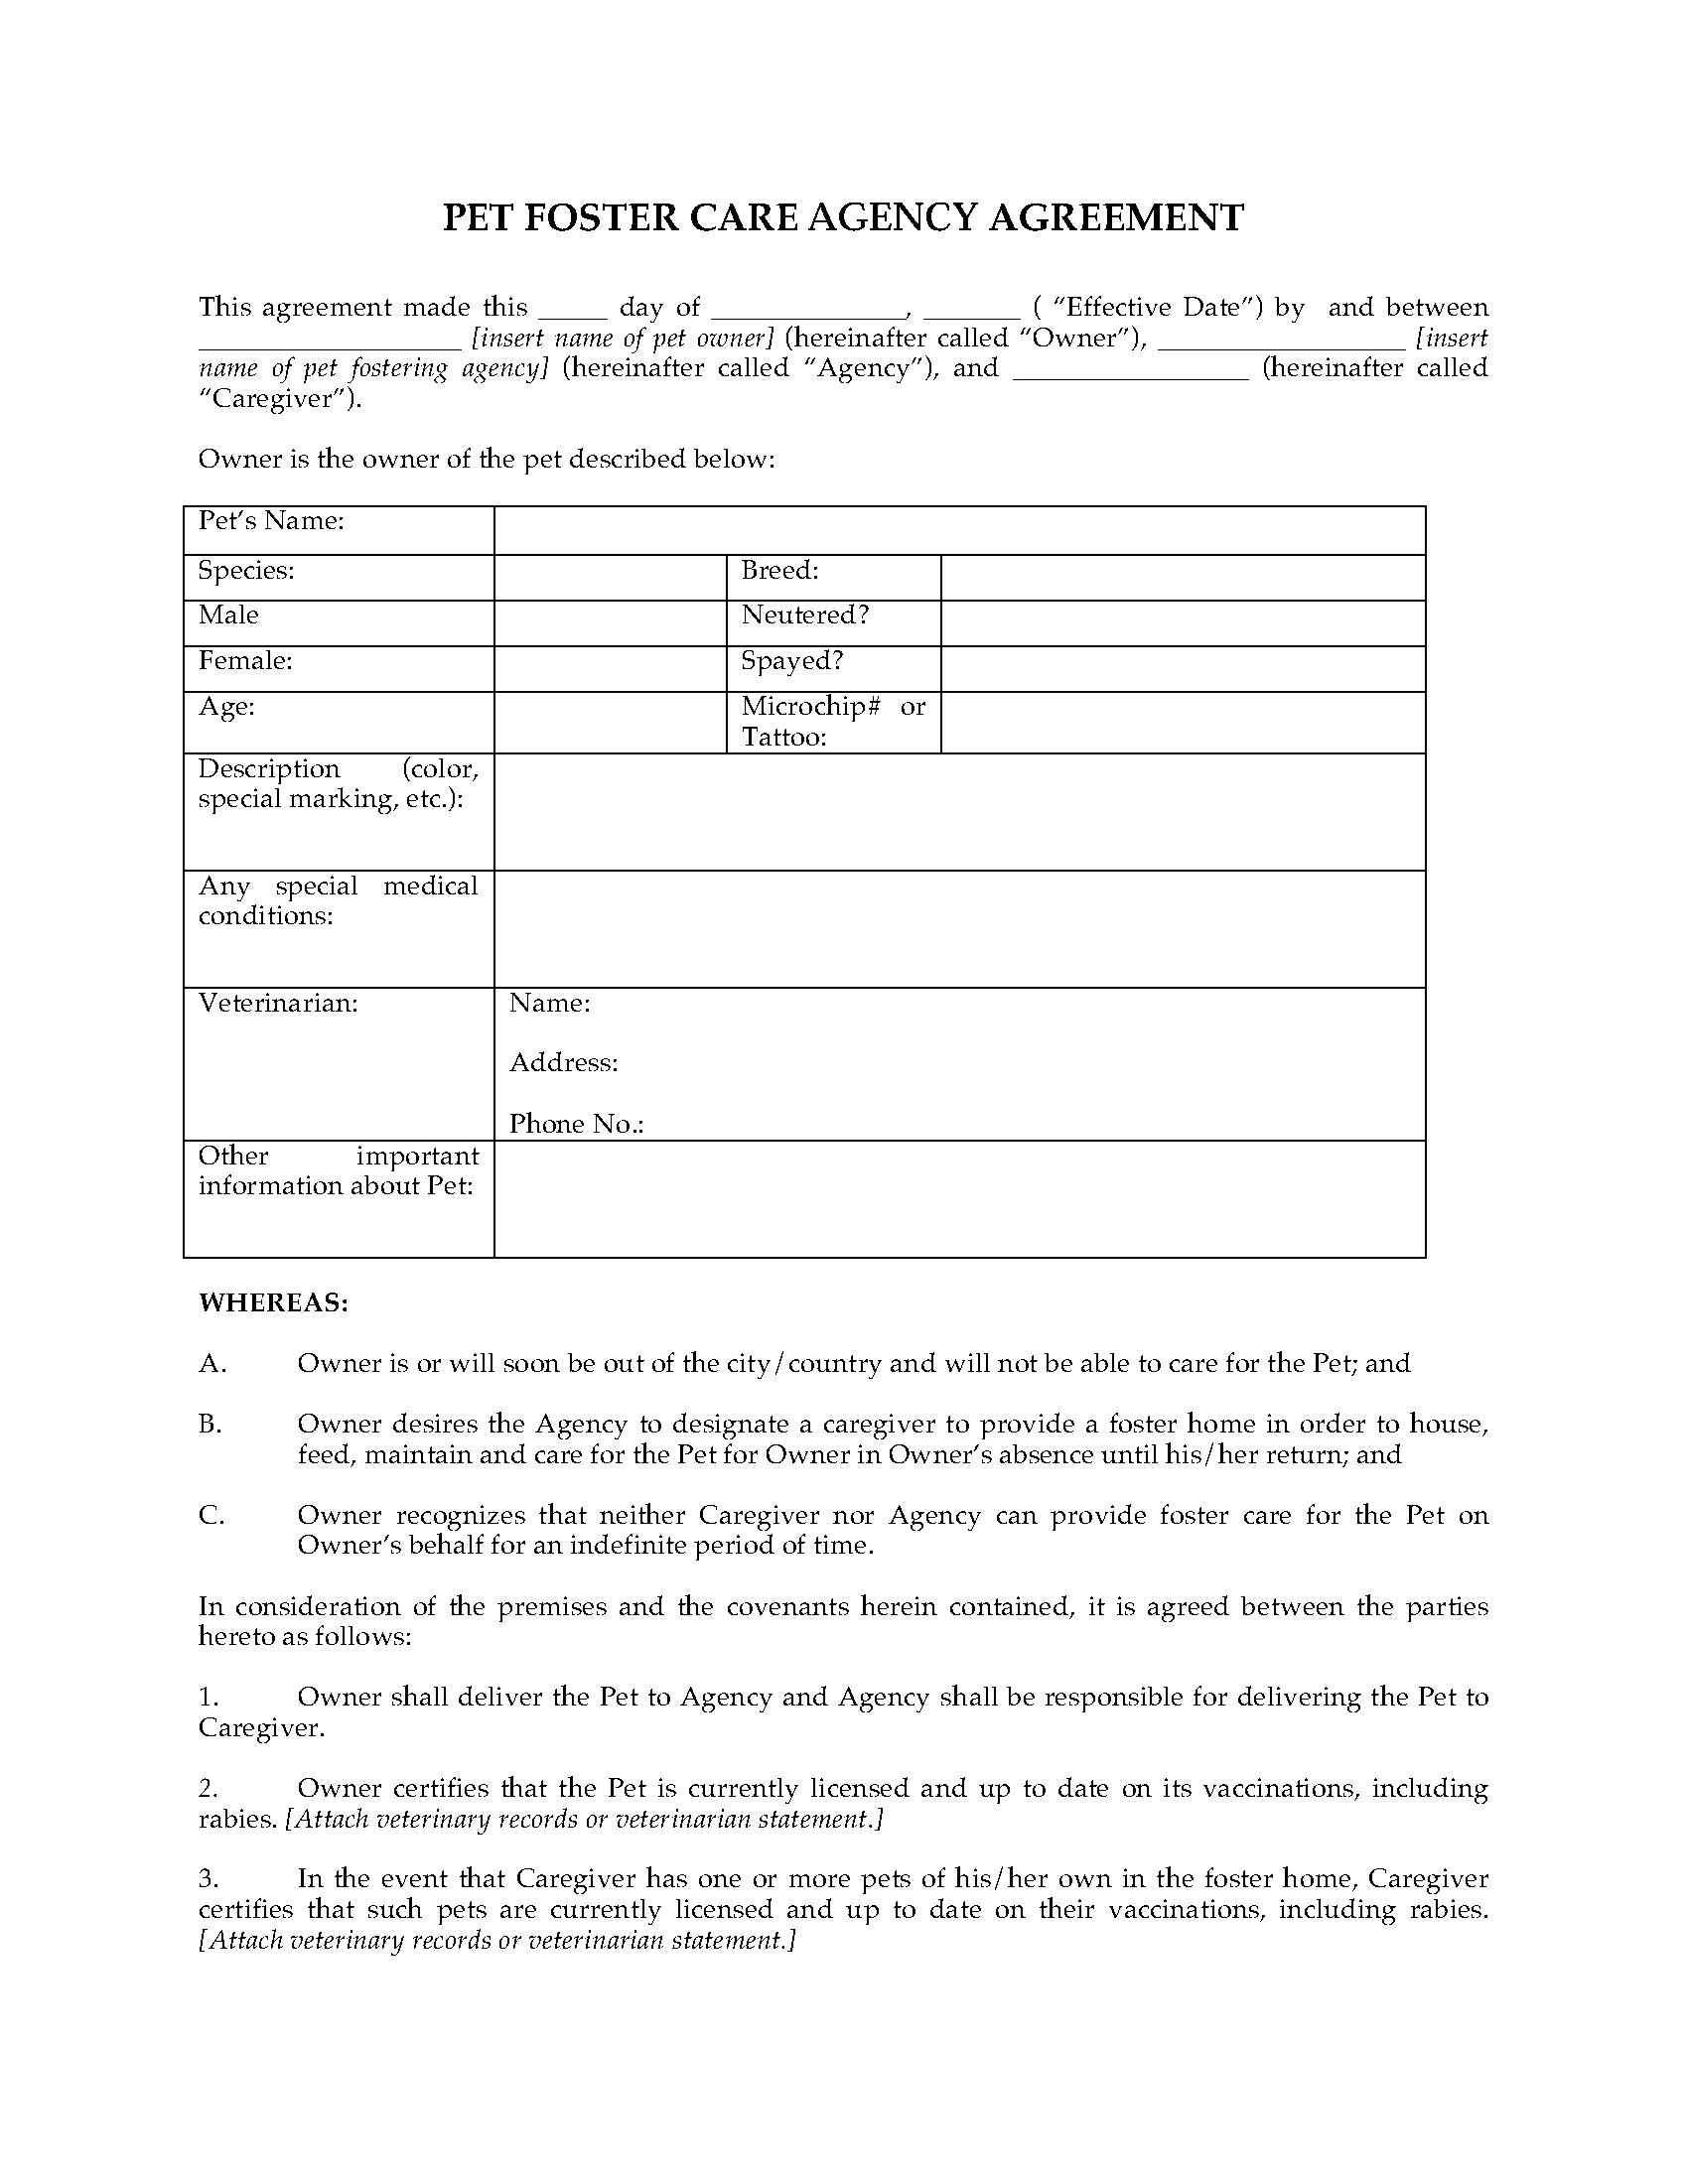 Pet Foster Care Agreement